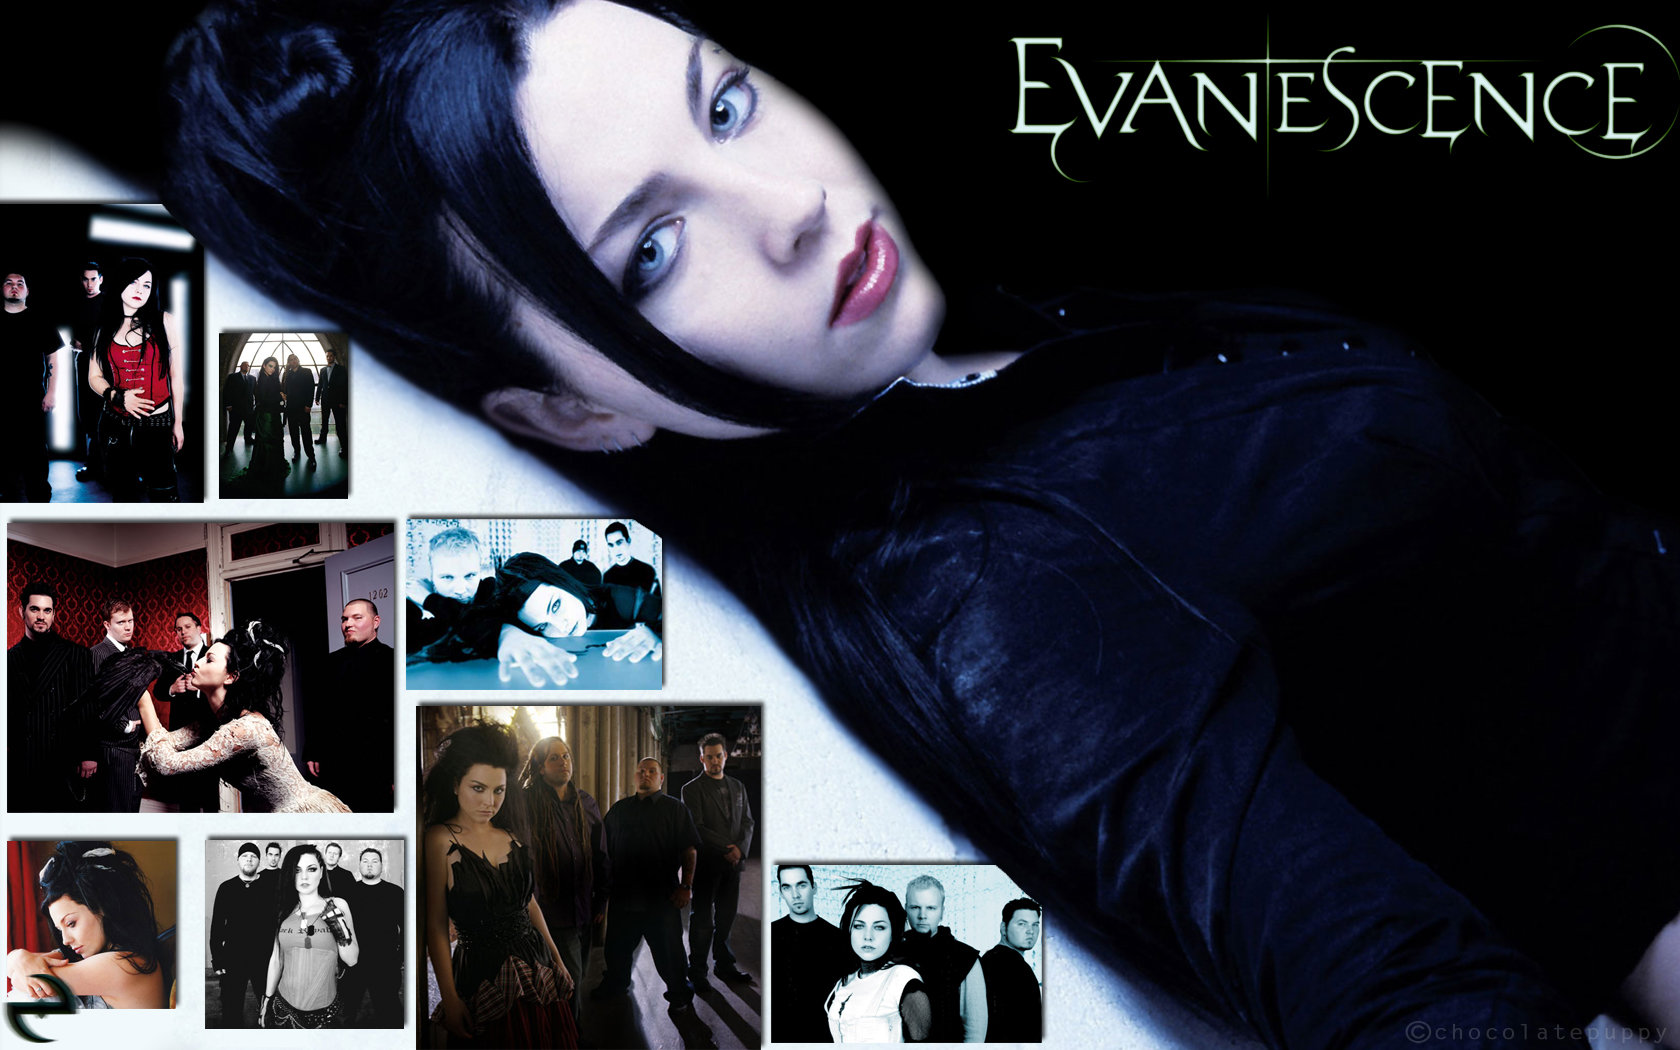 Evanescence Wallpaper by chocolatepuppy 1680x1050